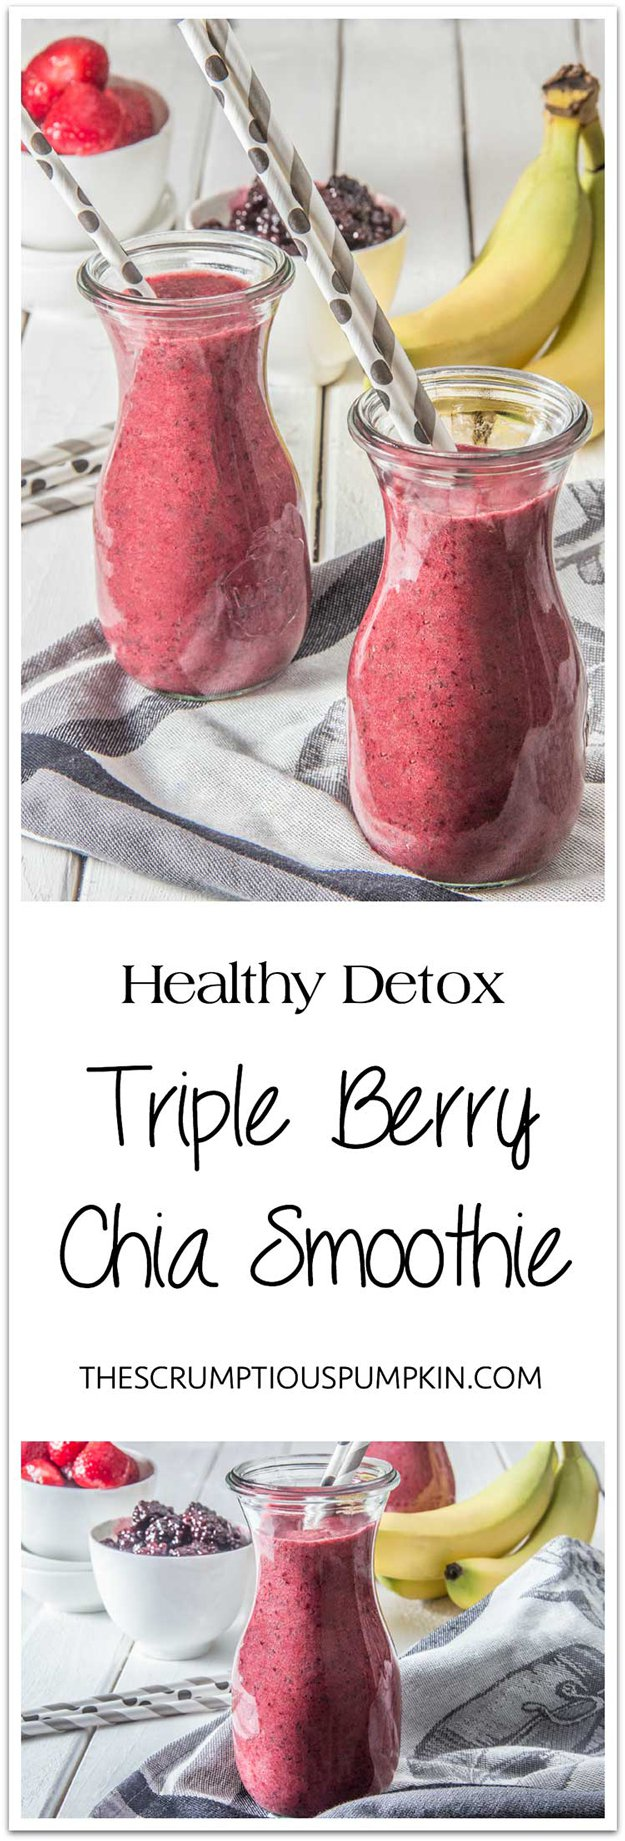 Healthy Vegan Berry Detox Smoothie | www.diyprojects.com/13-detox-smoothies-proven-to-boost-your-energy/